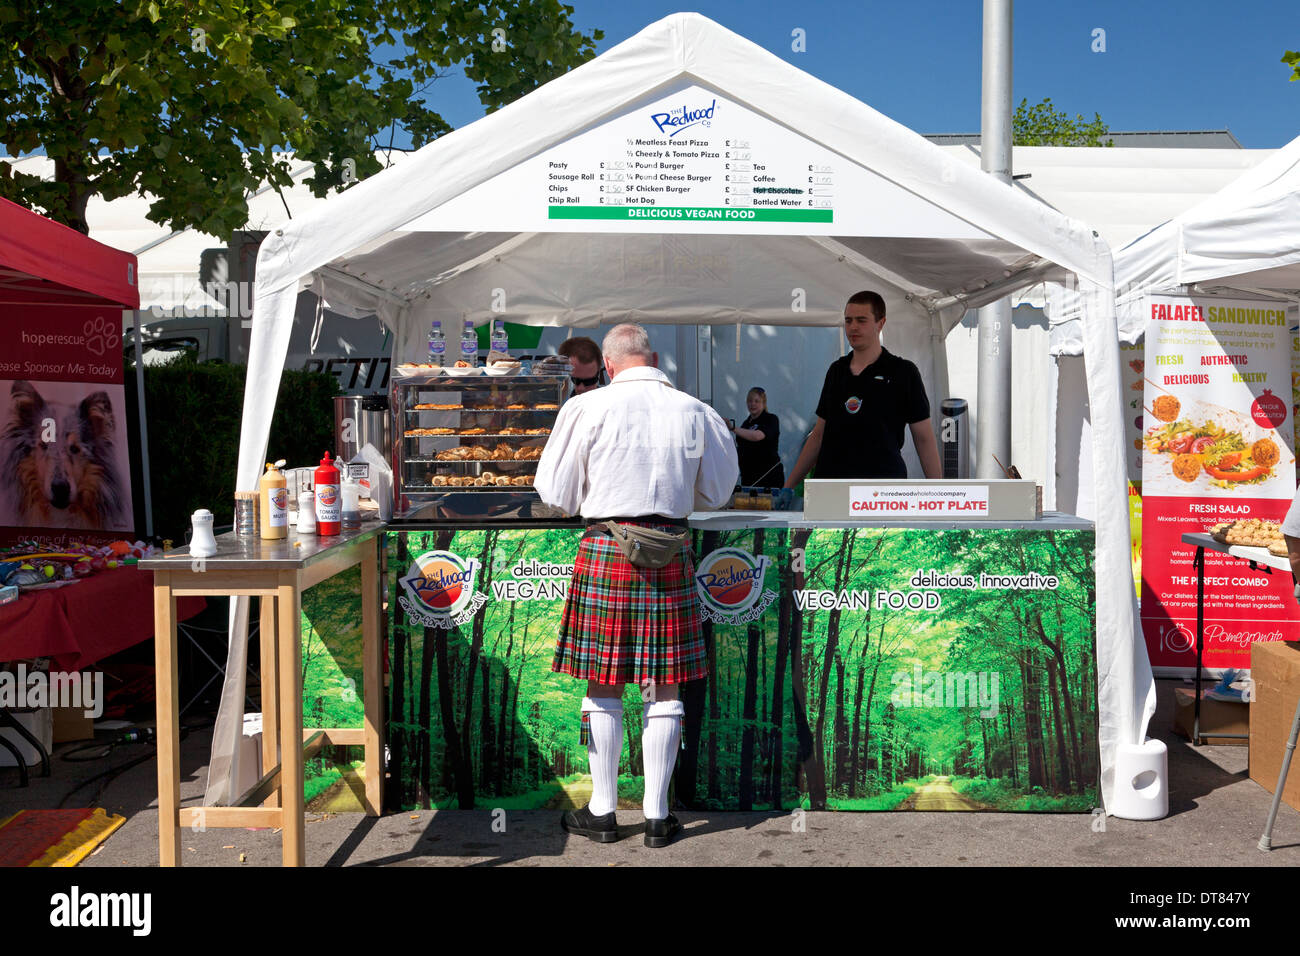 man-in-kilt-at-food-stall-at-bristol-vegfest-vegan-festival-2012-DT847Y.jpg